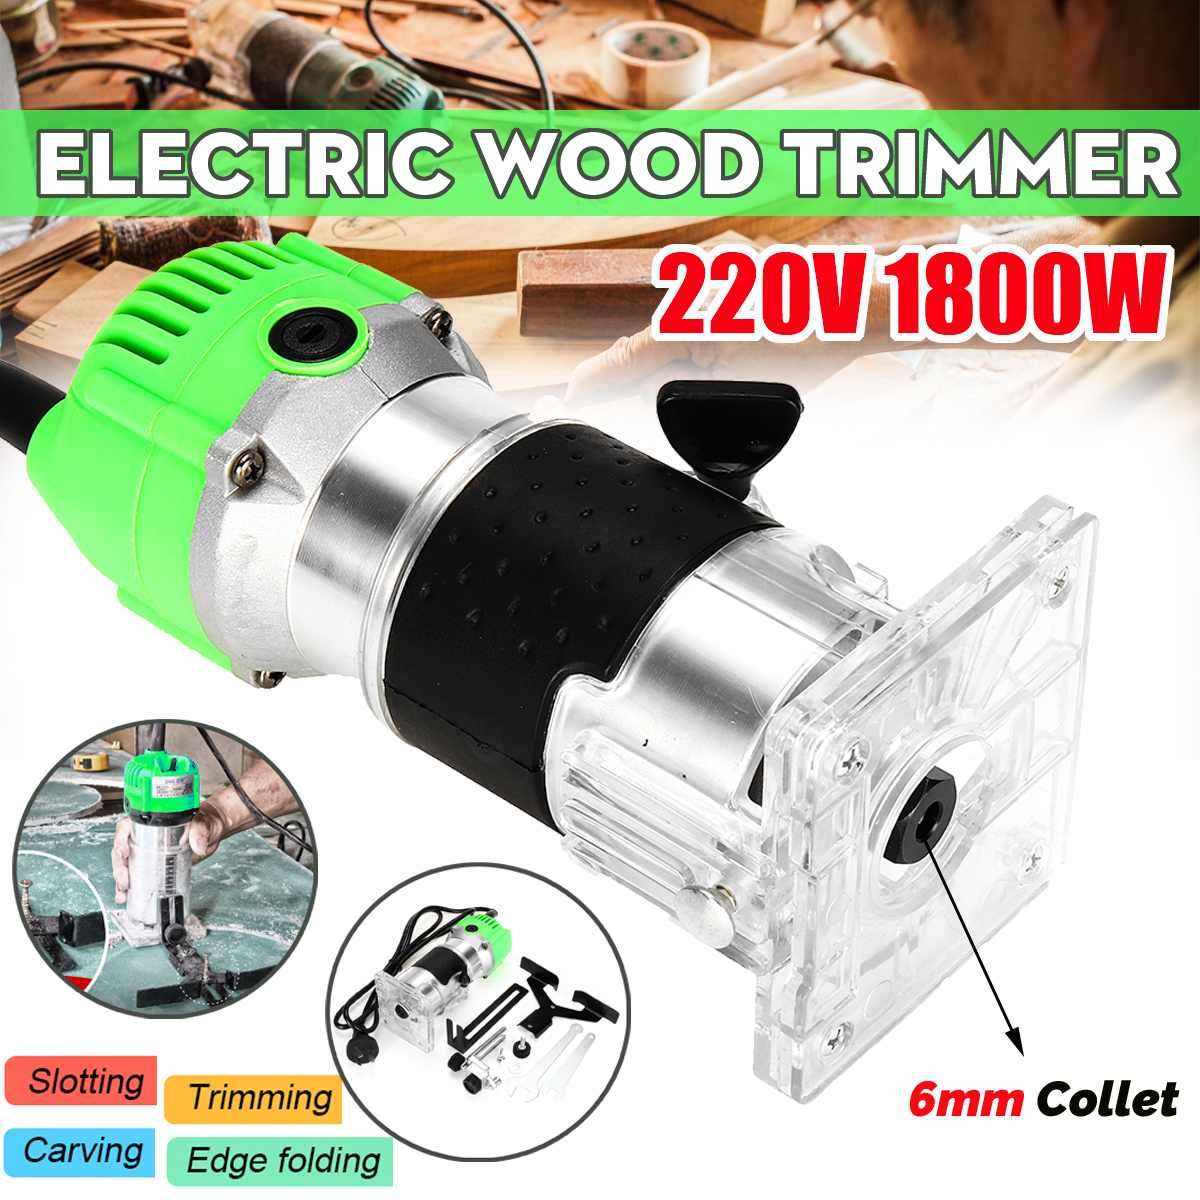 1800W 220V 30000r/min Electric Hand Trimmer Wood Laminator Router Joiners Tools ABS Plastic+Metal1800W 220V 30000r/min Electric Hand Trimmer Wood Laminator Router Joiners Tools ABS Plastic+Metal